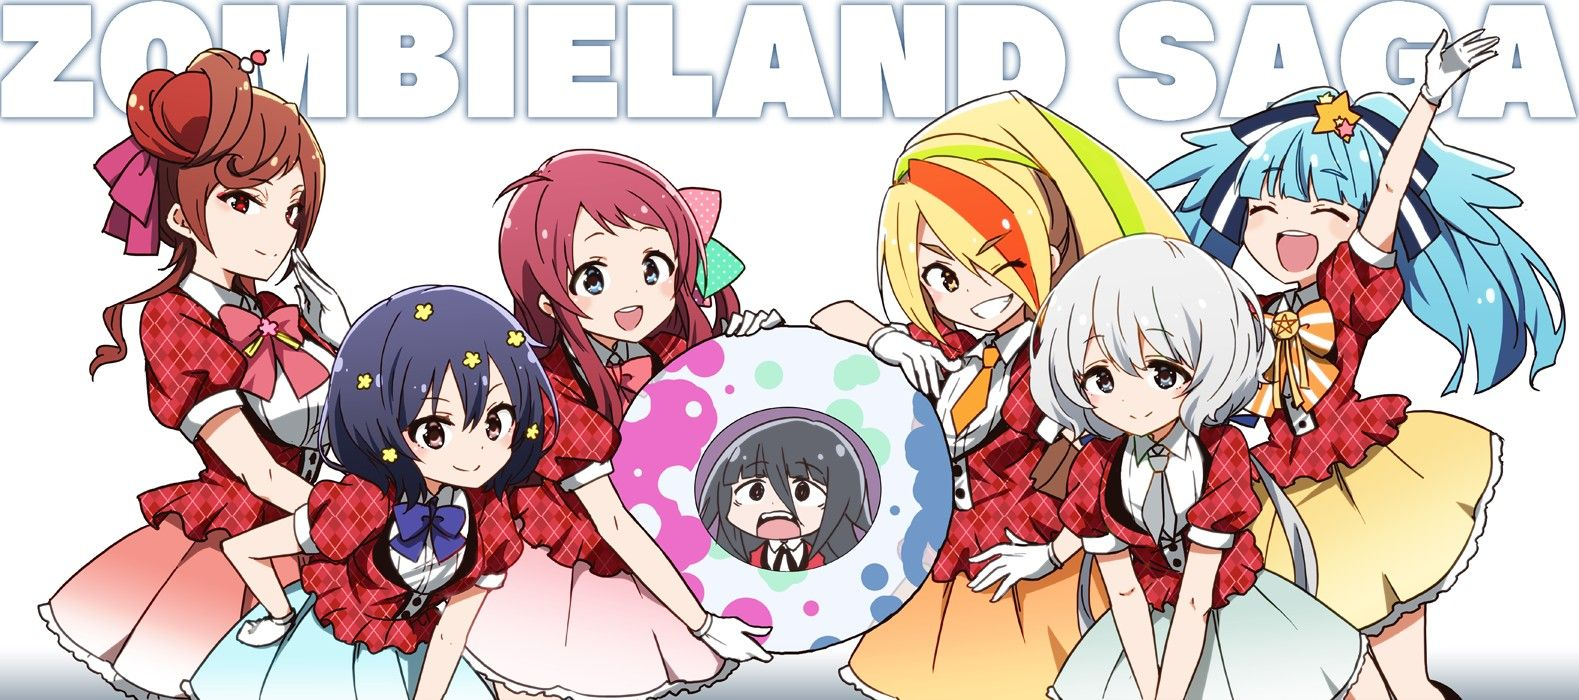 Pin by Rain on Zombieland Saga Anime, Zombie land saga